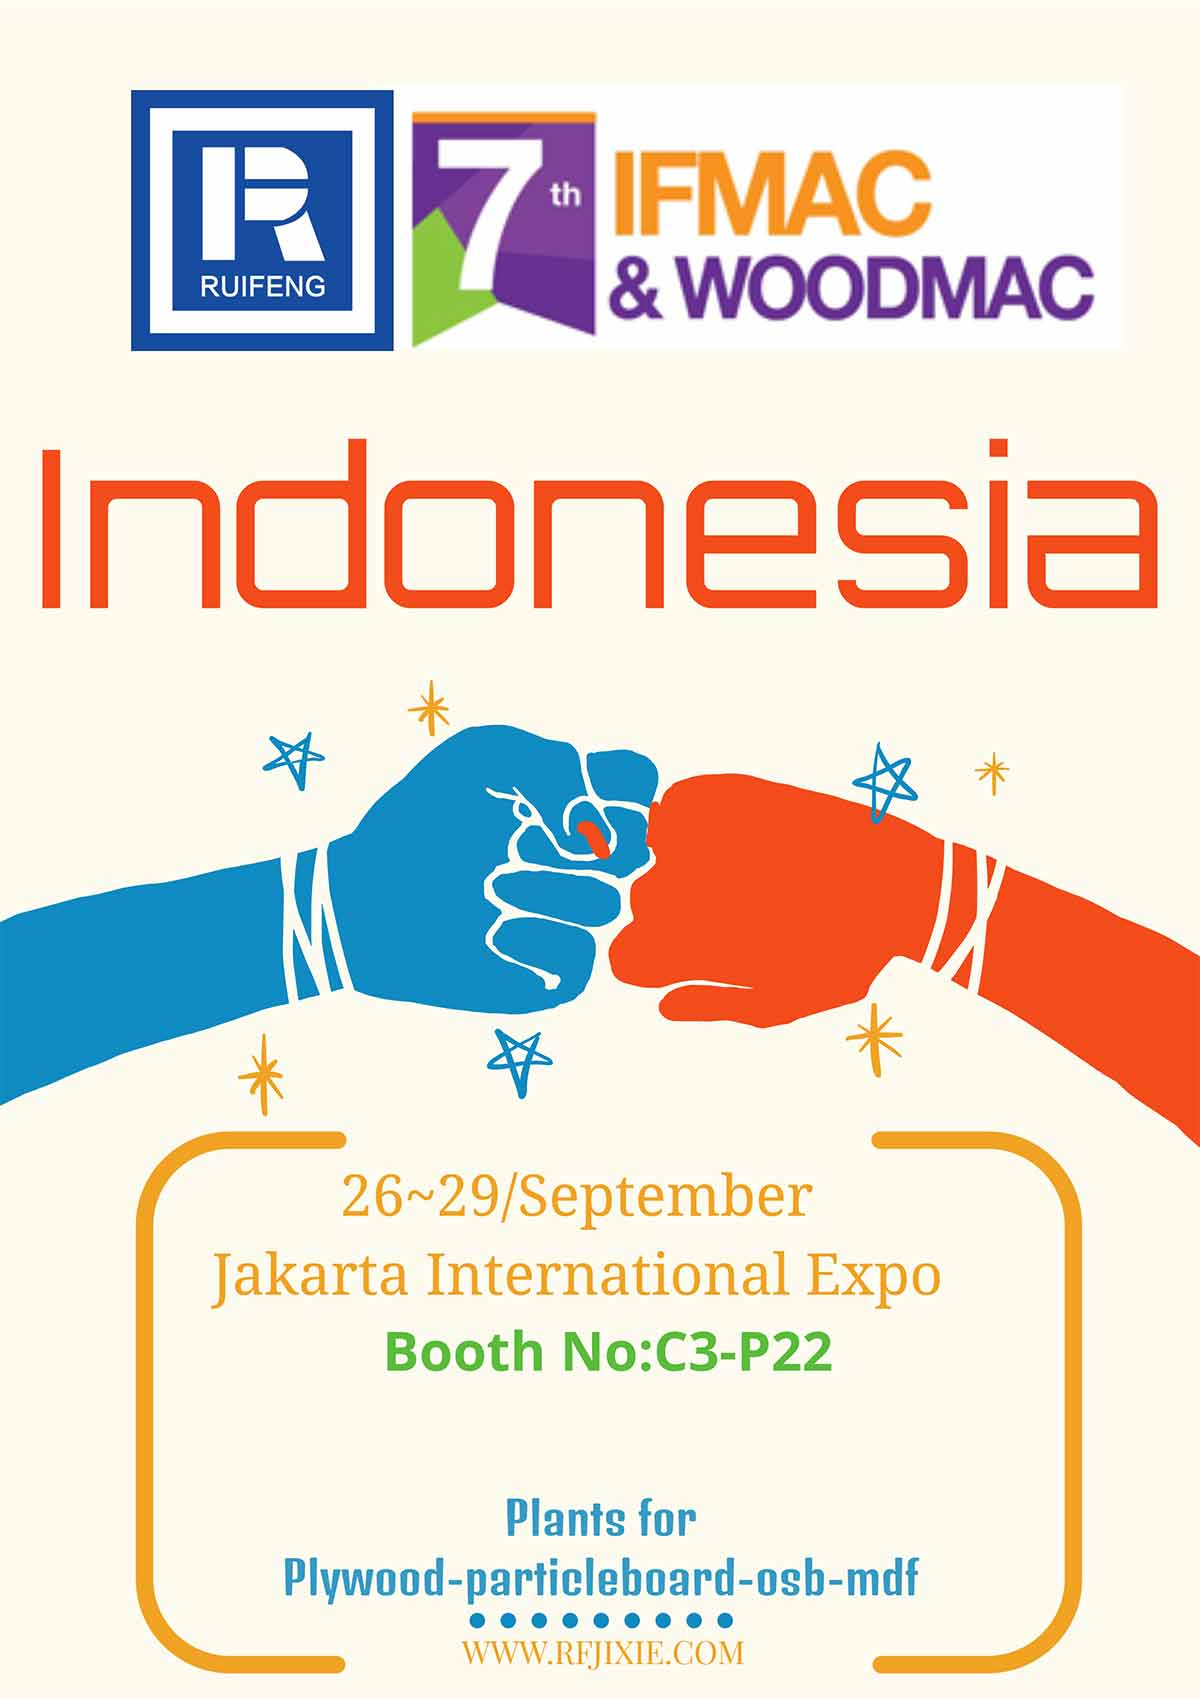 7th IFMAC and WOODMAC exhibition at the Jakarta International Expo, Indonesia